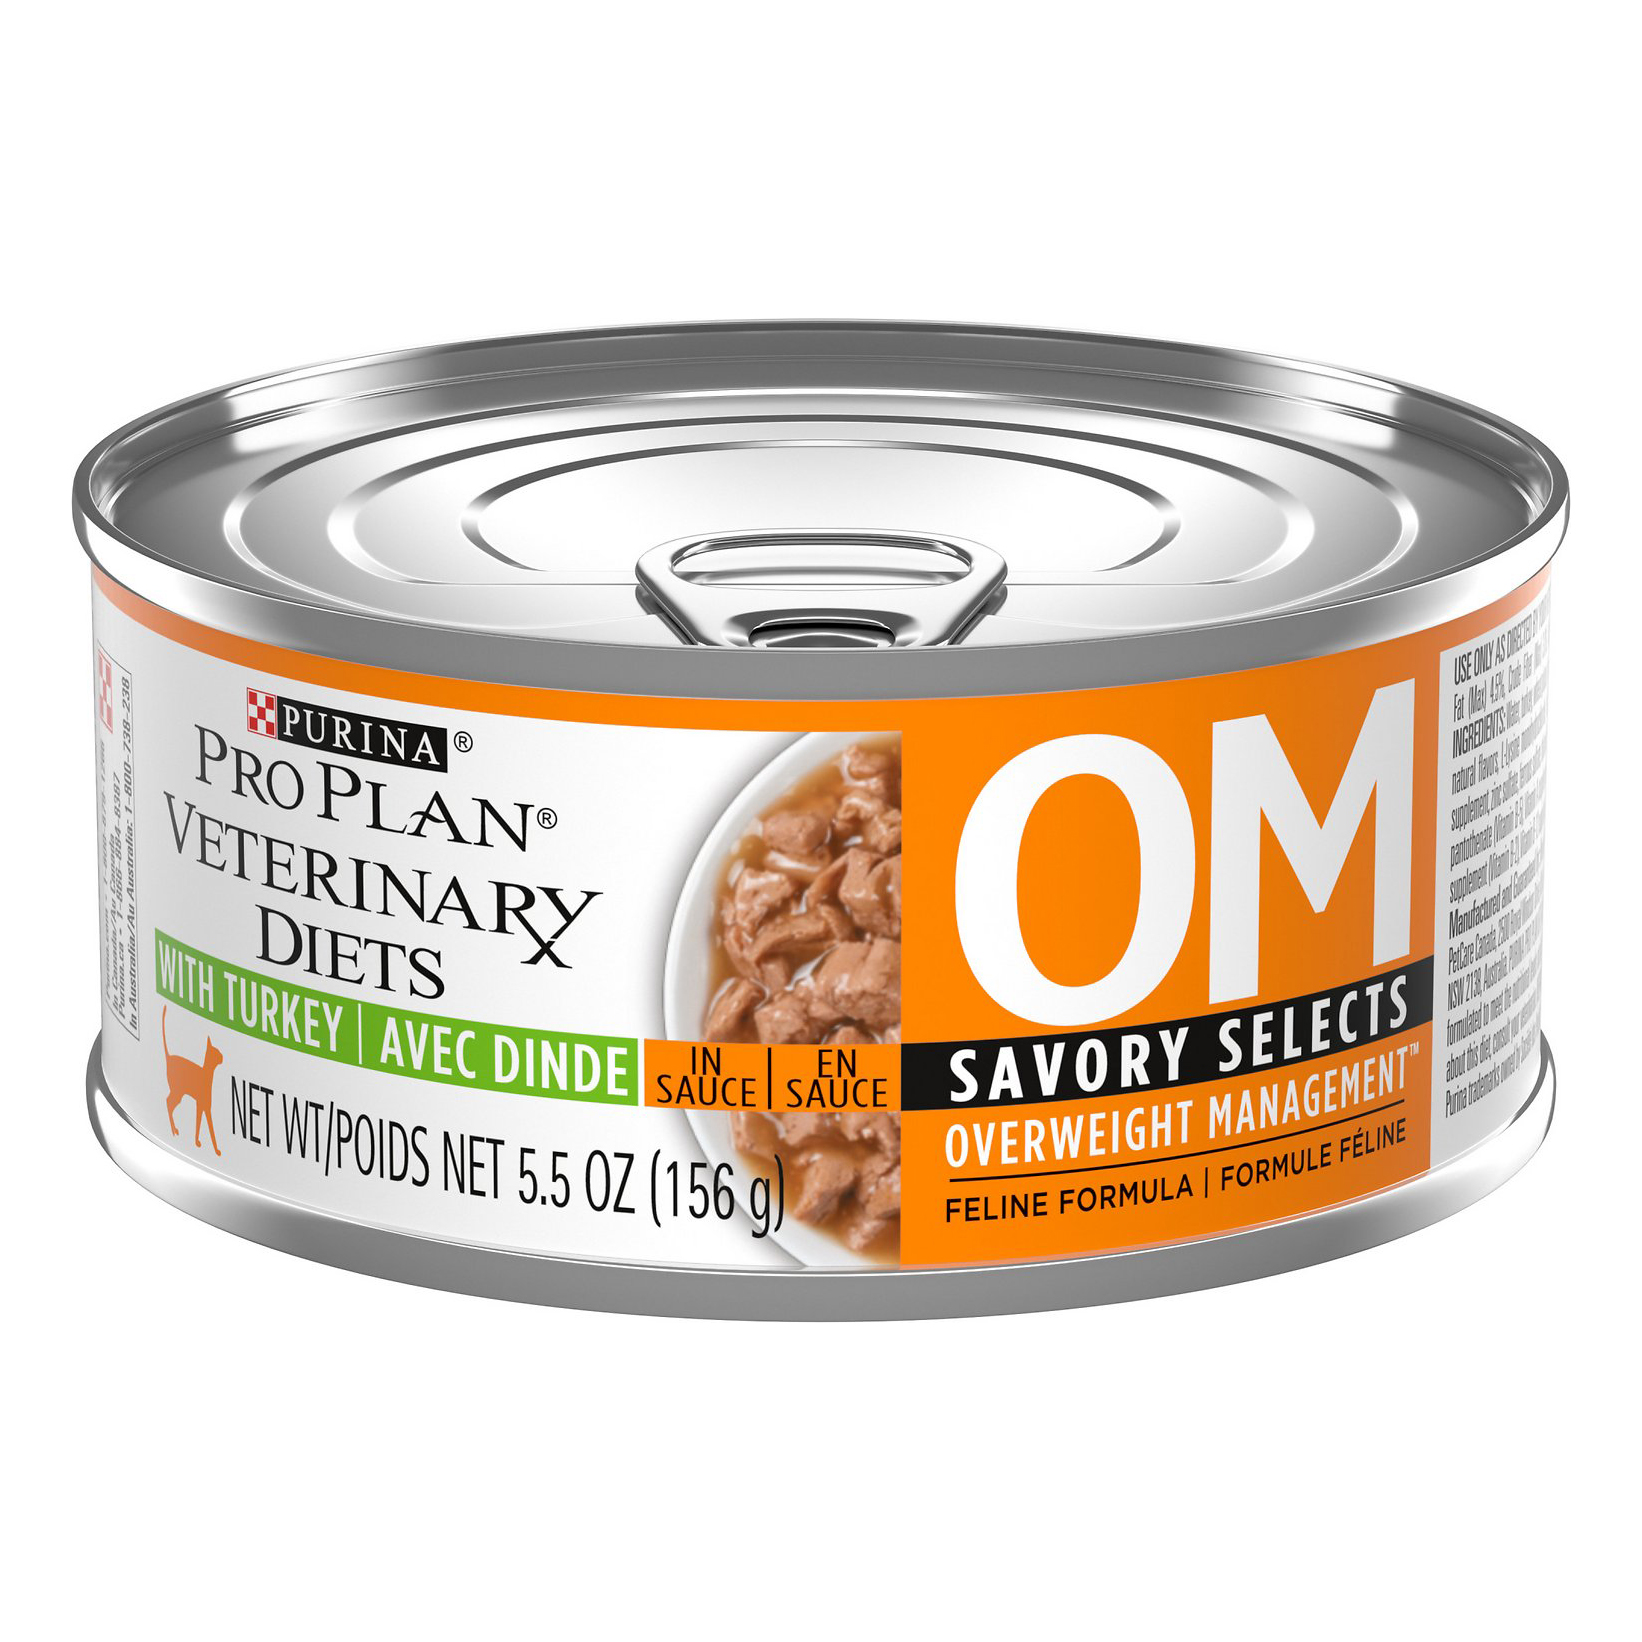 purina-pro-plan-veterinary-diets-om-savory-selects-overweight-management-formula-canned-cat-food